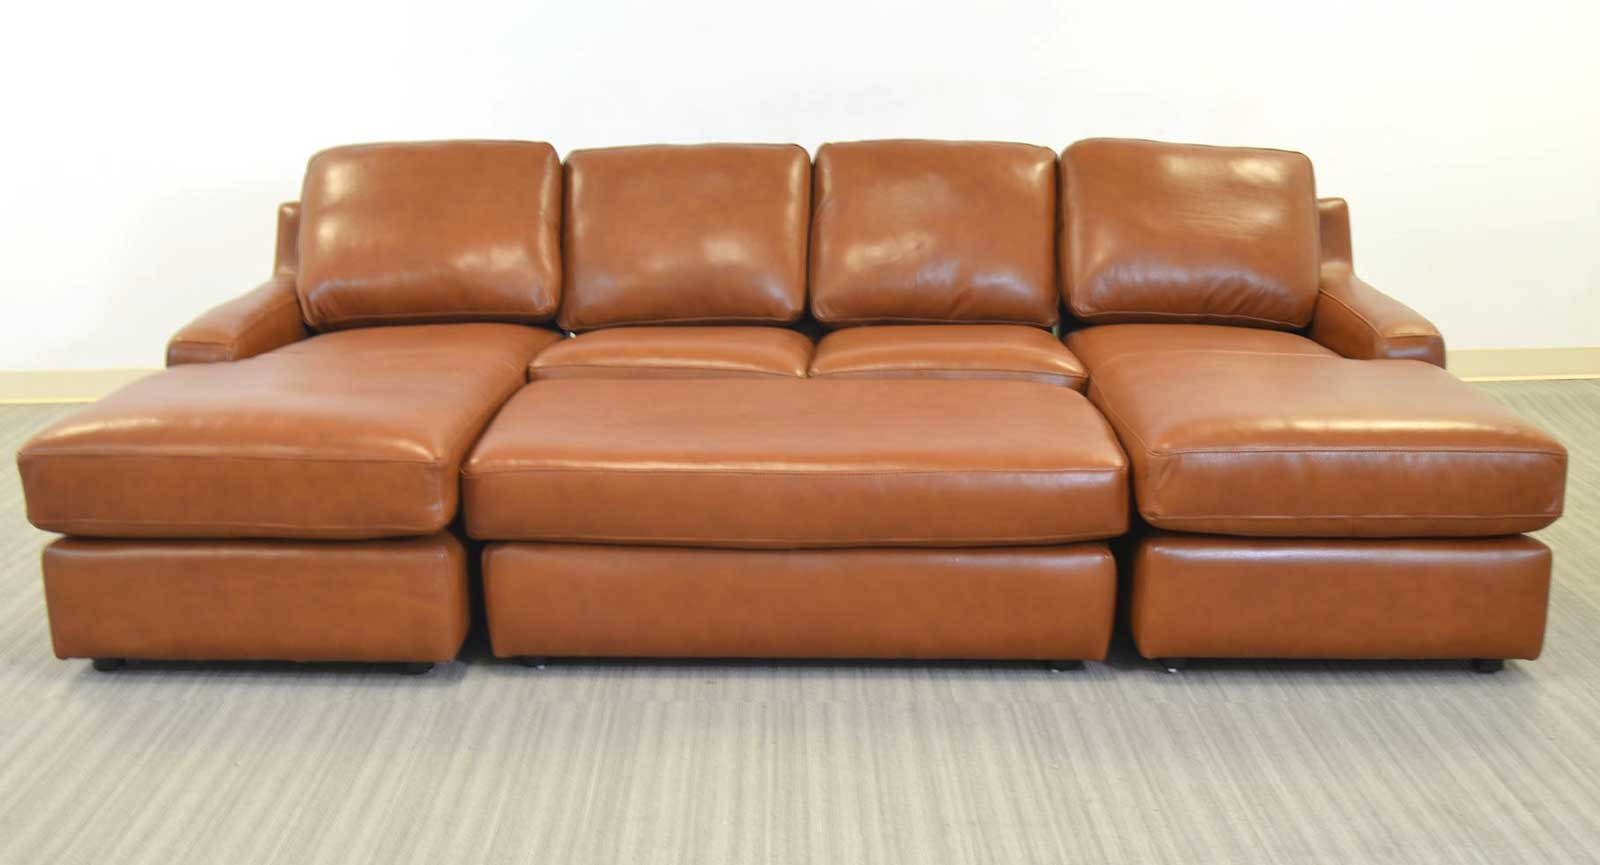 boulevard sectional rsf corner sofa armless loveseat u0026 lsf chaise right and left arm chaise armless loveseat ottoman a